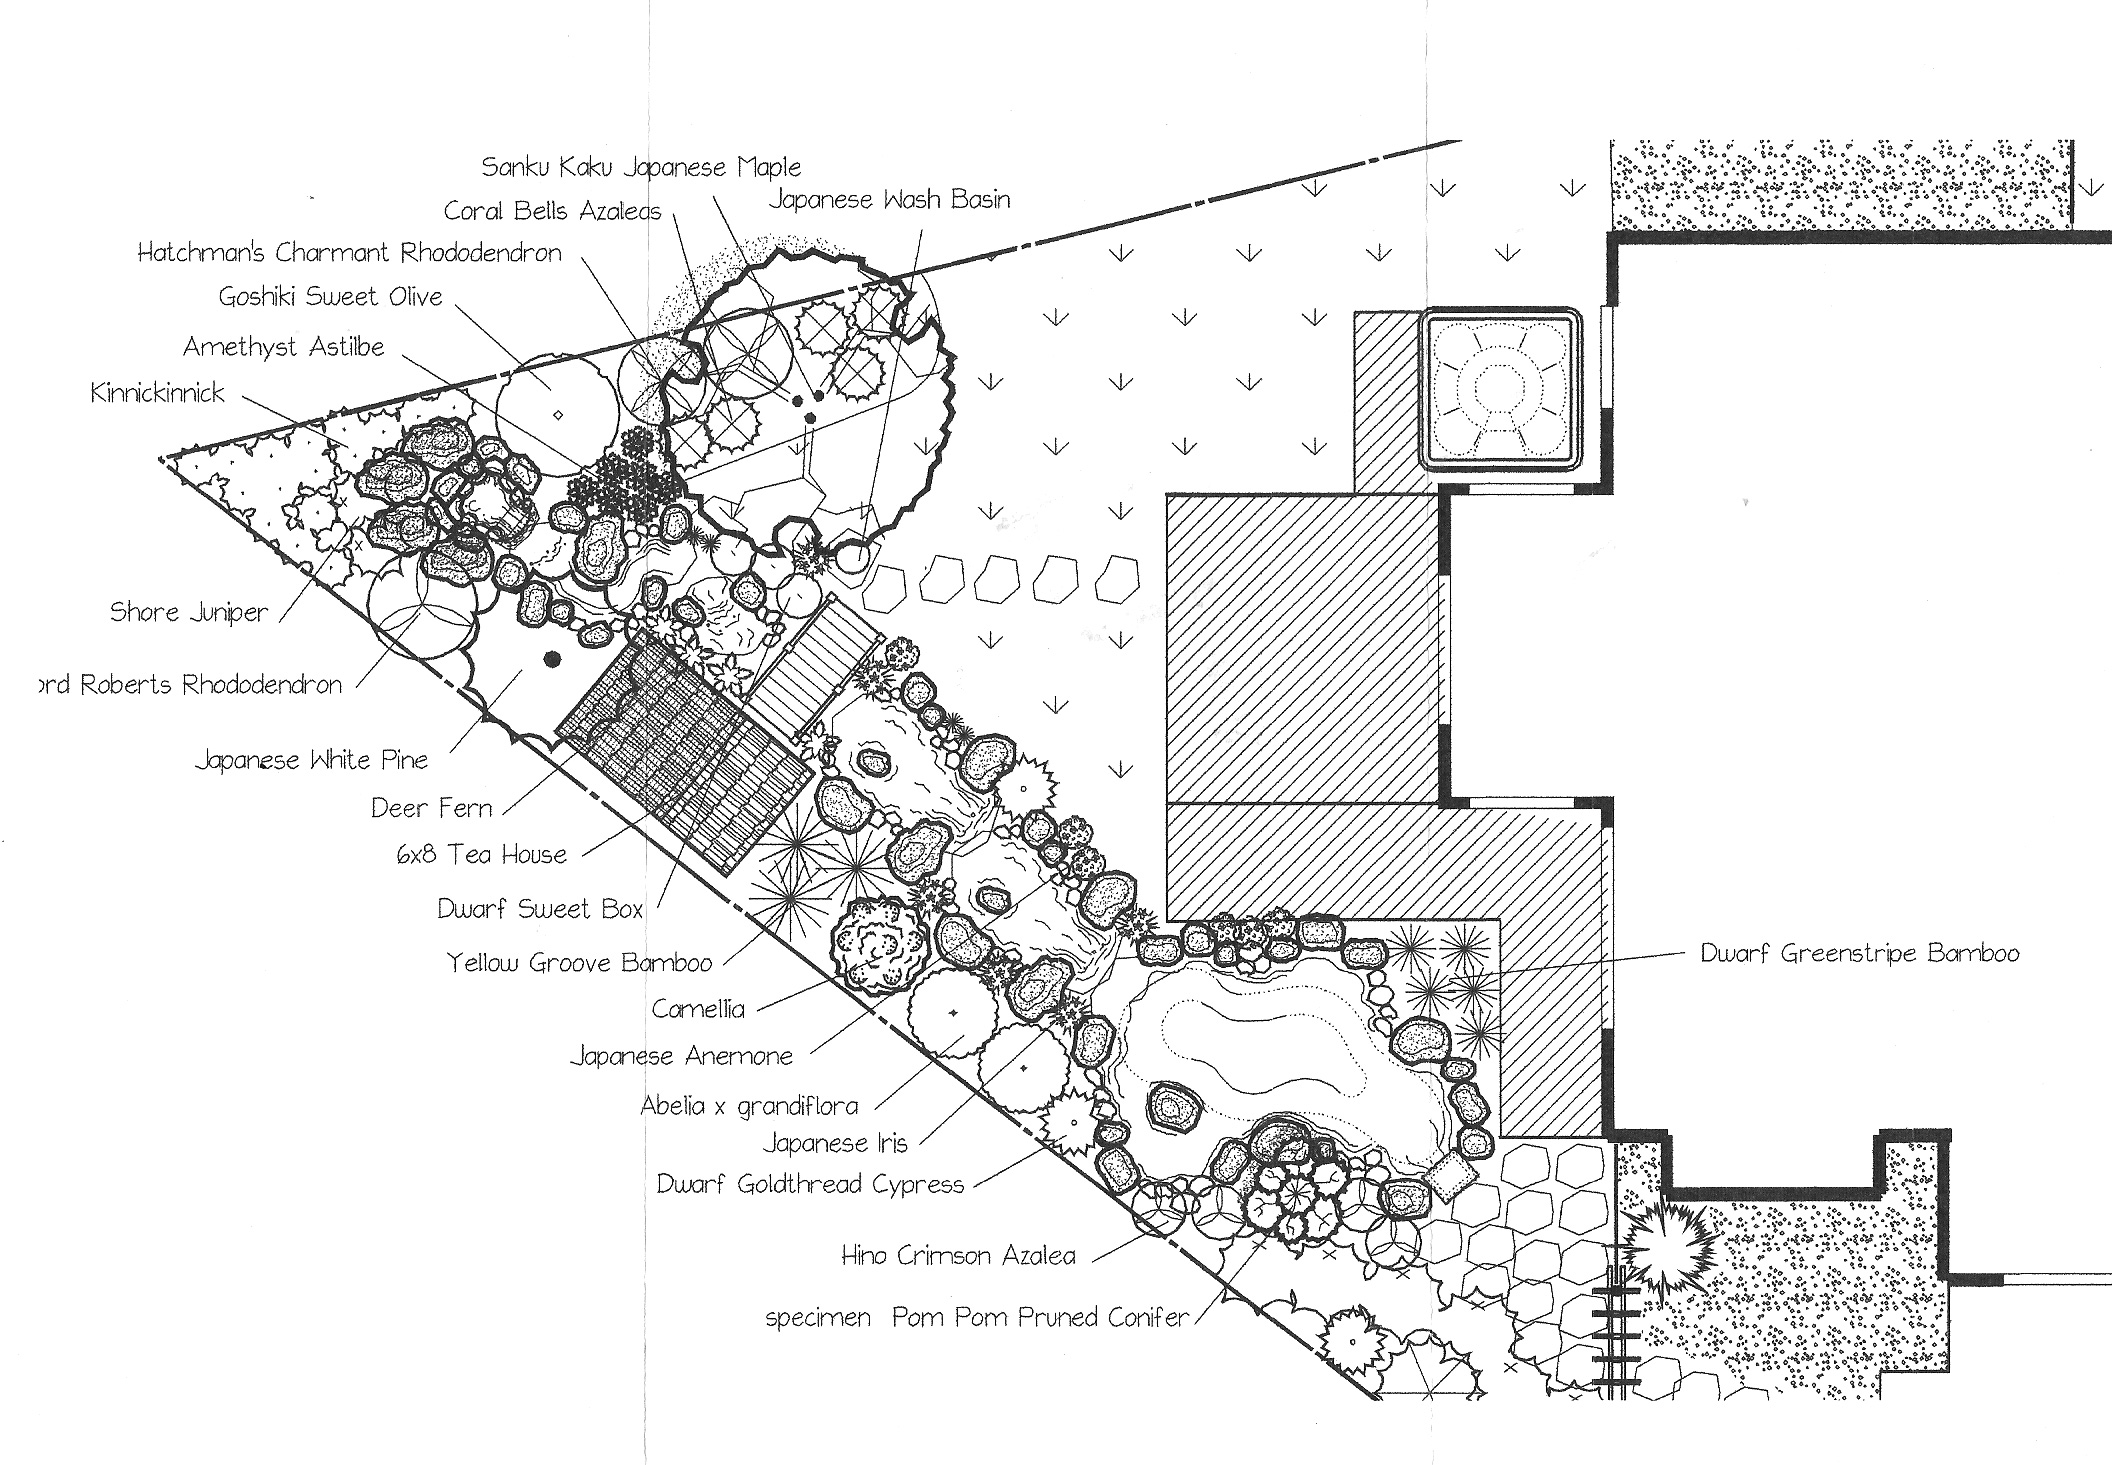 Japanese Garden Design Drawing on garden layout drawing, fountain design drawing, japanese art drawing, japanese architecture drawing, japanese zen gardens, vineyard design drawing, nature design drawing, japanese painting drawing, fruit design drawing, love design drawing, japanese woman drawing, landscape tree plan drawing, japanese bonsai drawing, french garden drawing, grapevine design drawing, zen design drawing, japanese sculpture drawing, water design drawing, christmas design drawing, japanese home drawing,